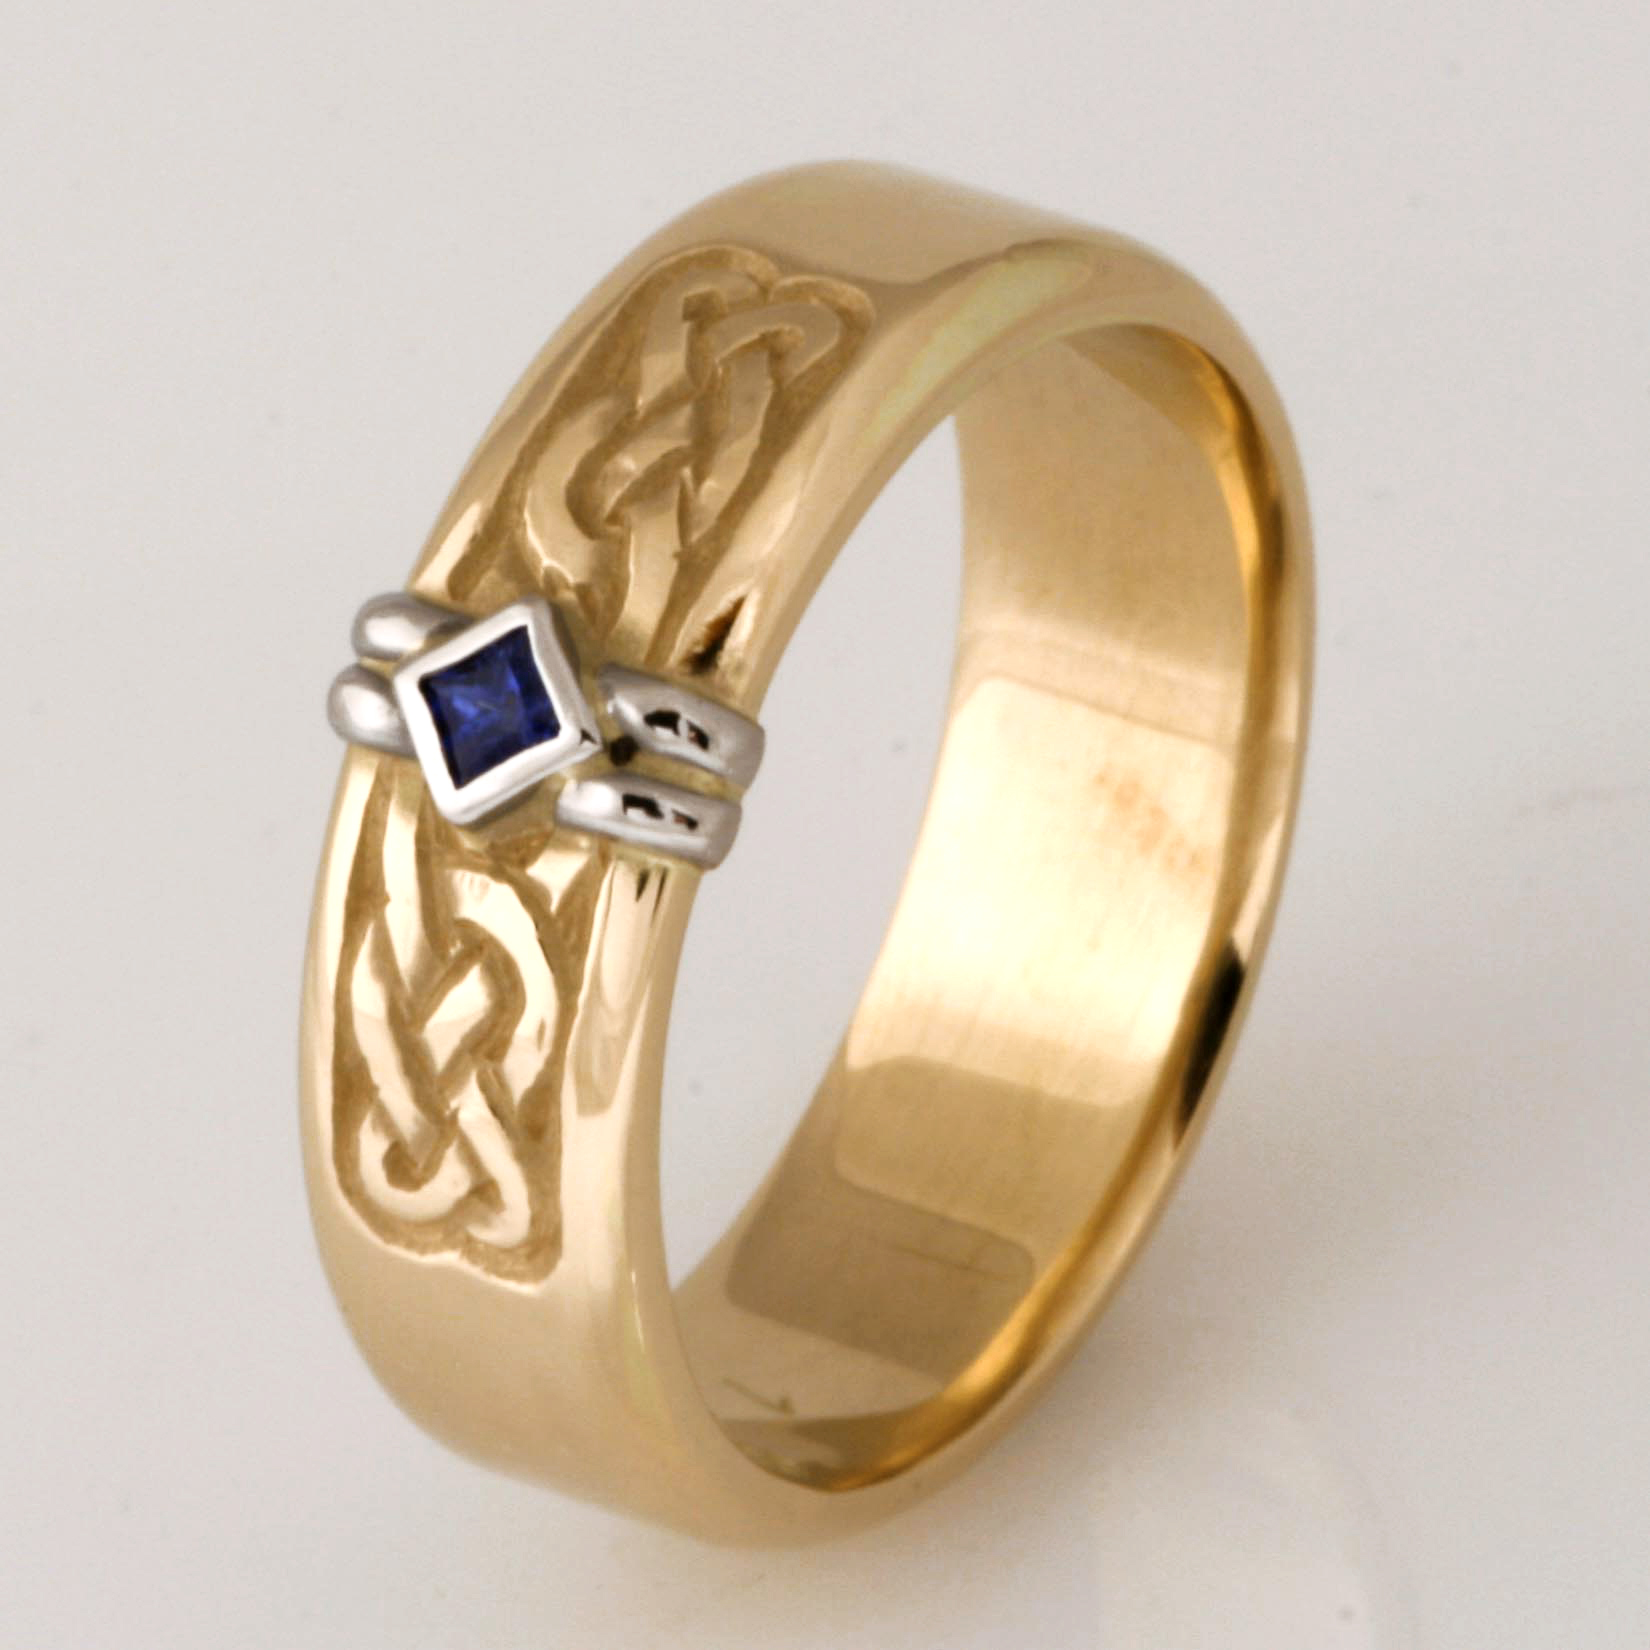 Handmade gents 18ct yellow gold and palladium hand engraved wedding ring featuring a Ceylon sapphire